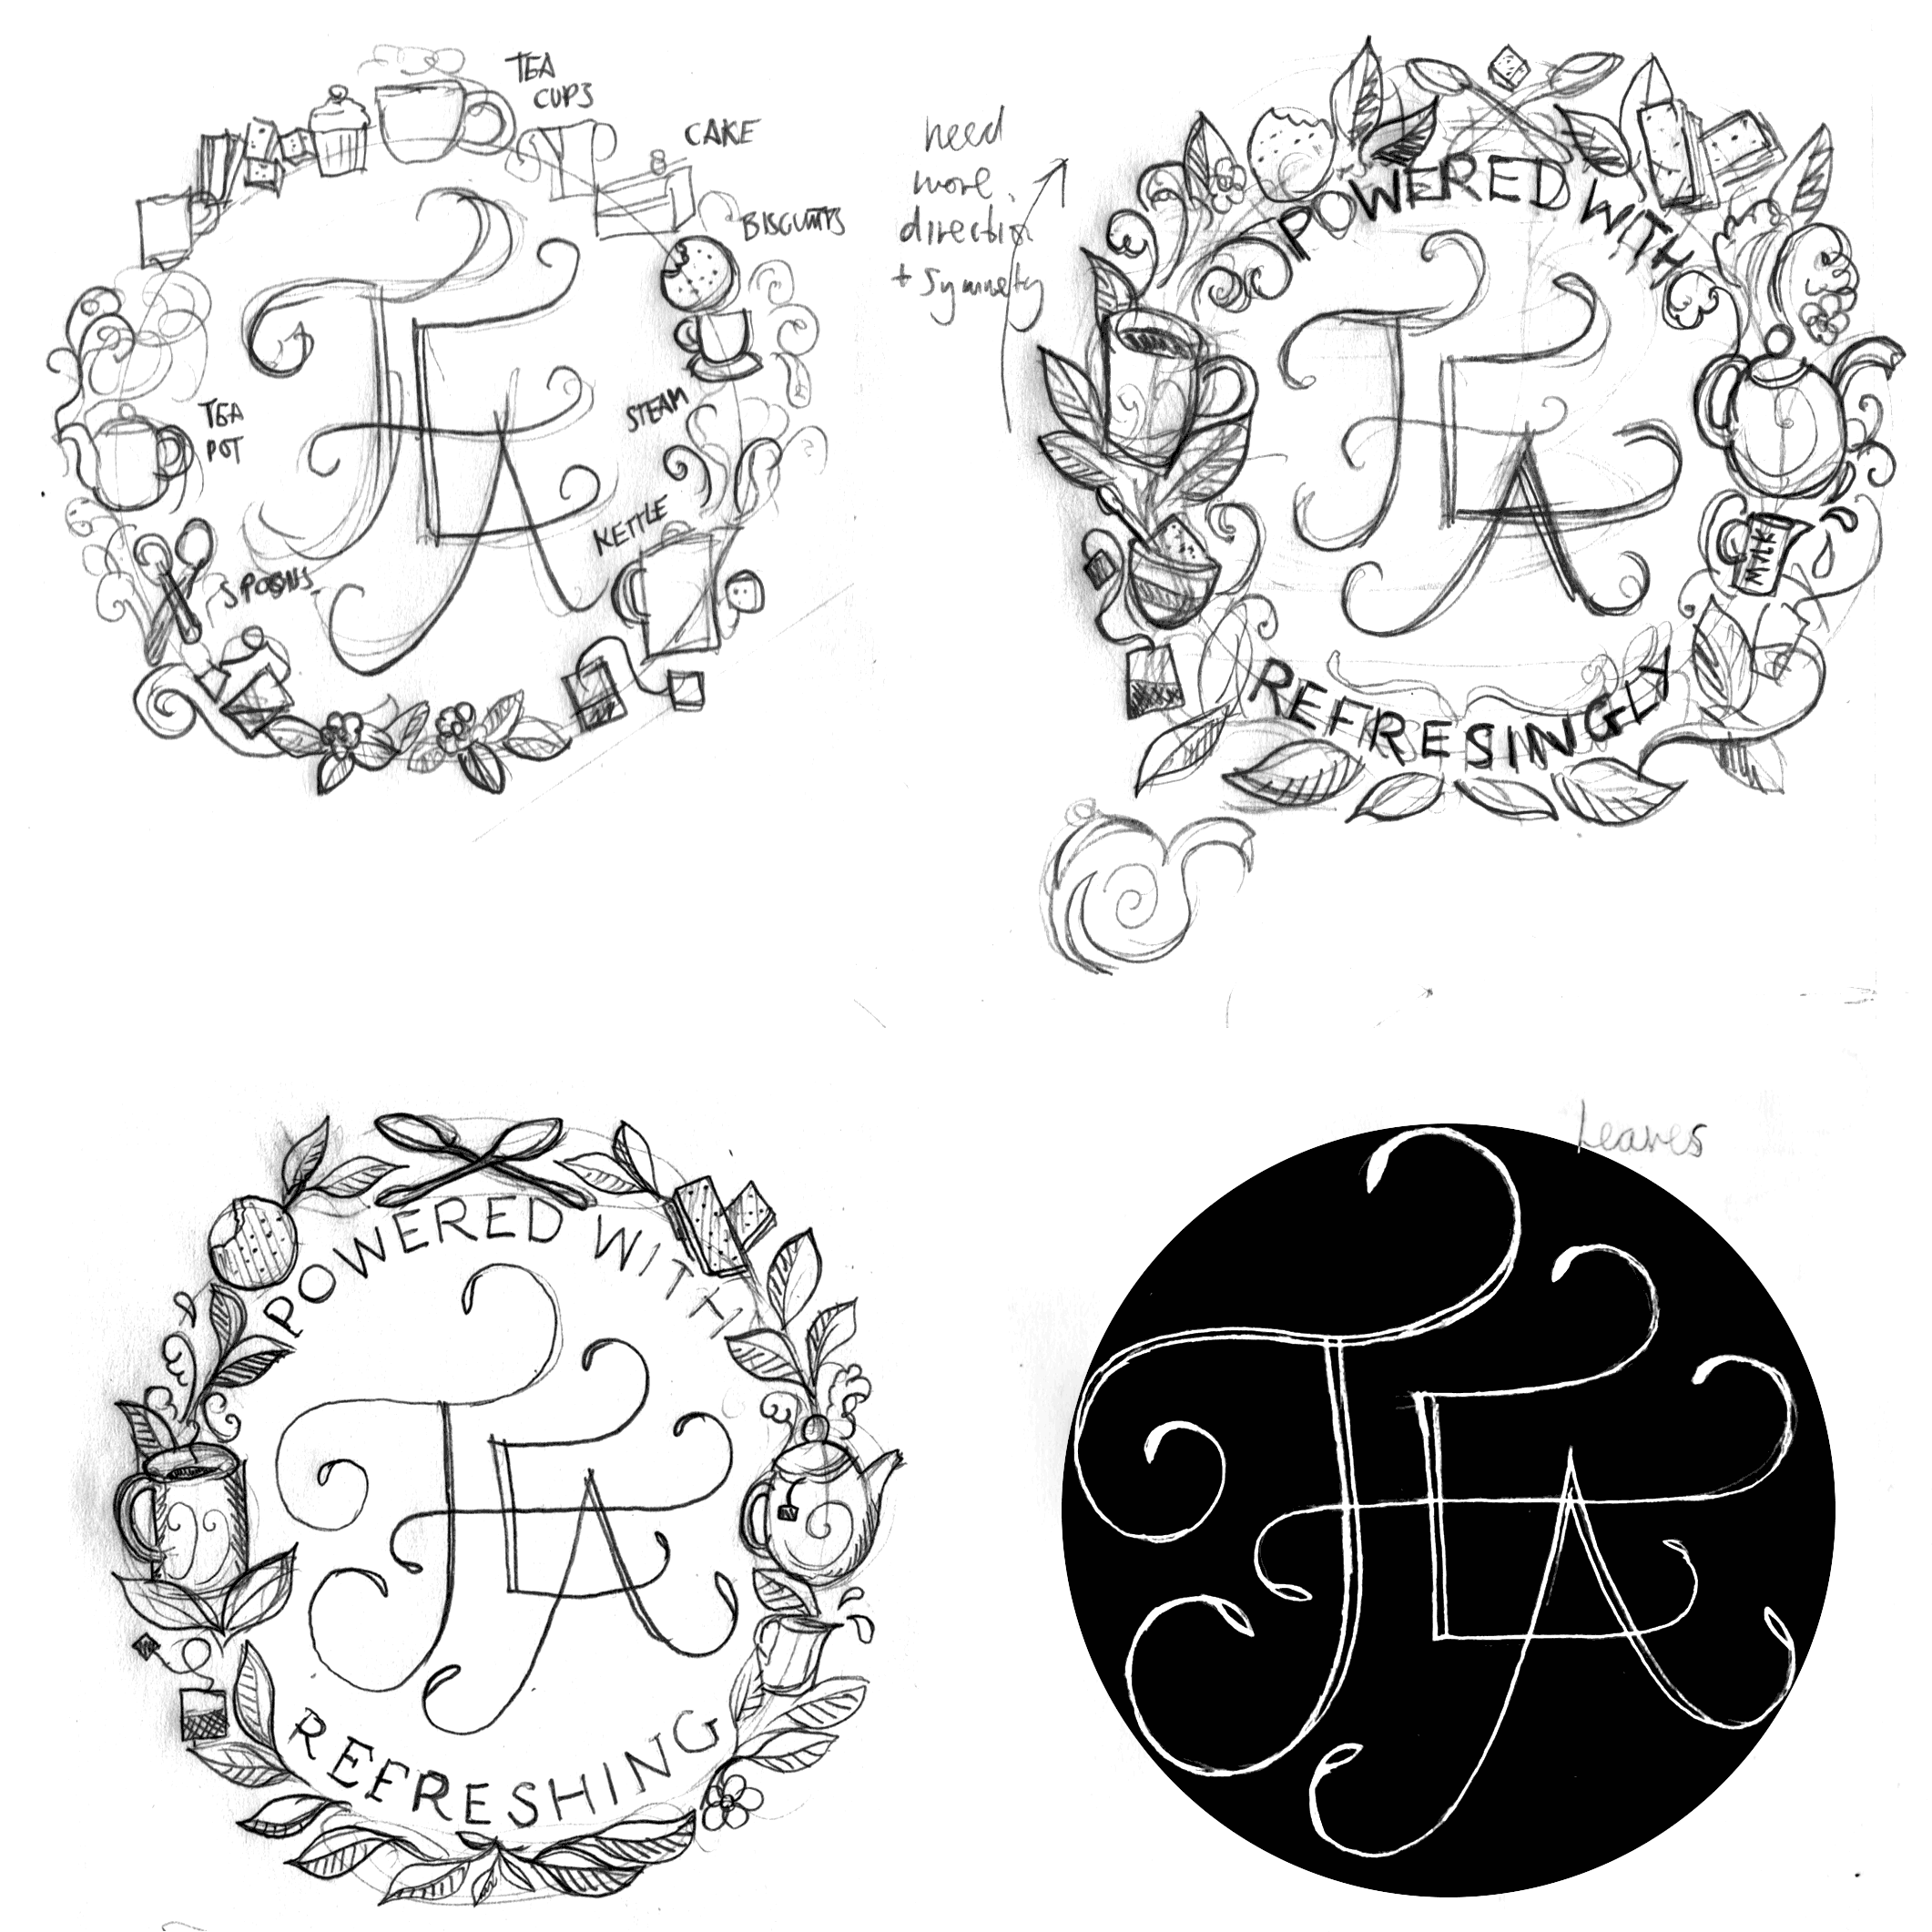 Element sketches for the laurel. I nearly got a slice of cake in there too.